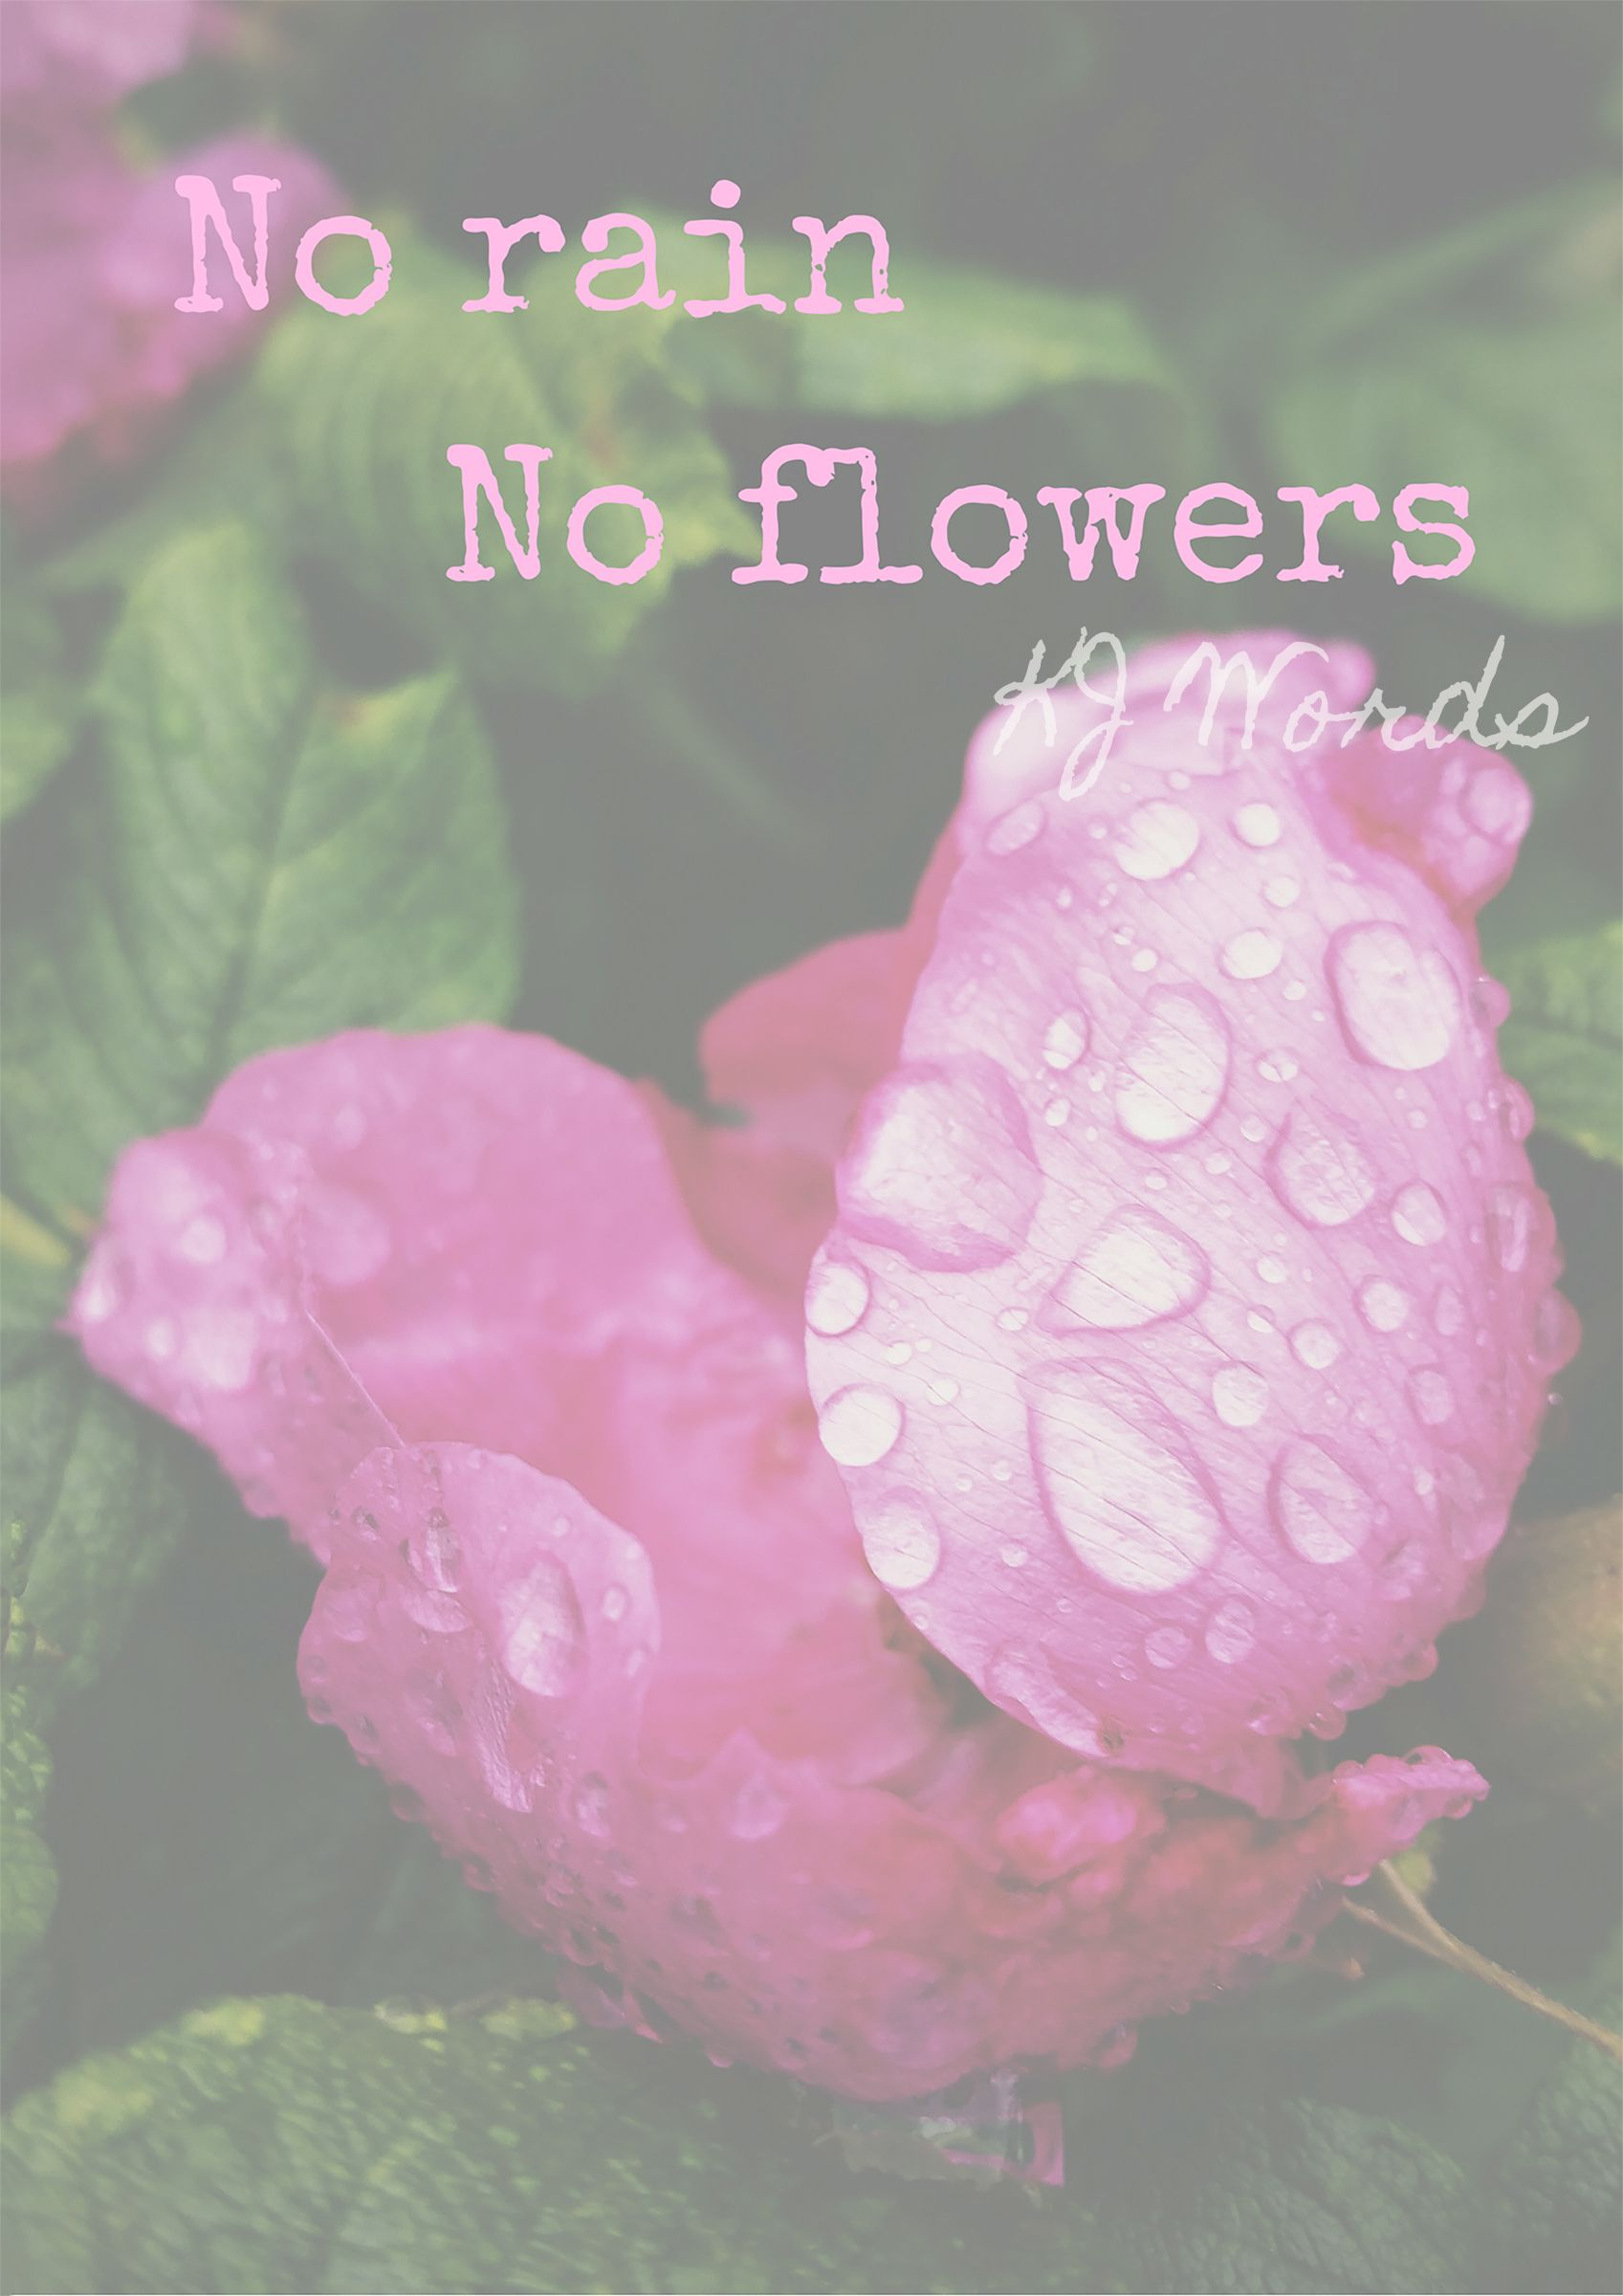 No Rain No Flowers Motivational Beautiful Quote Roses Flowers